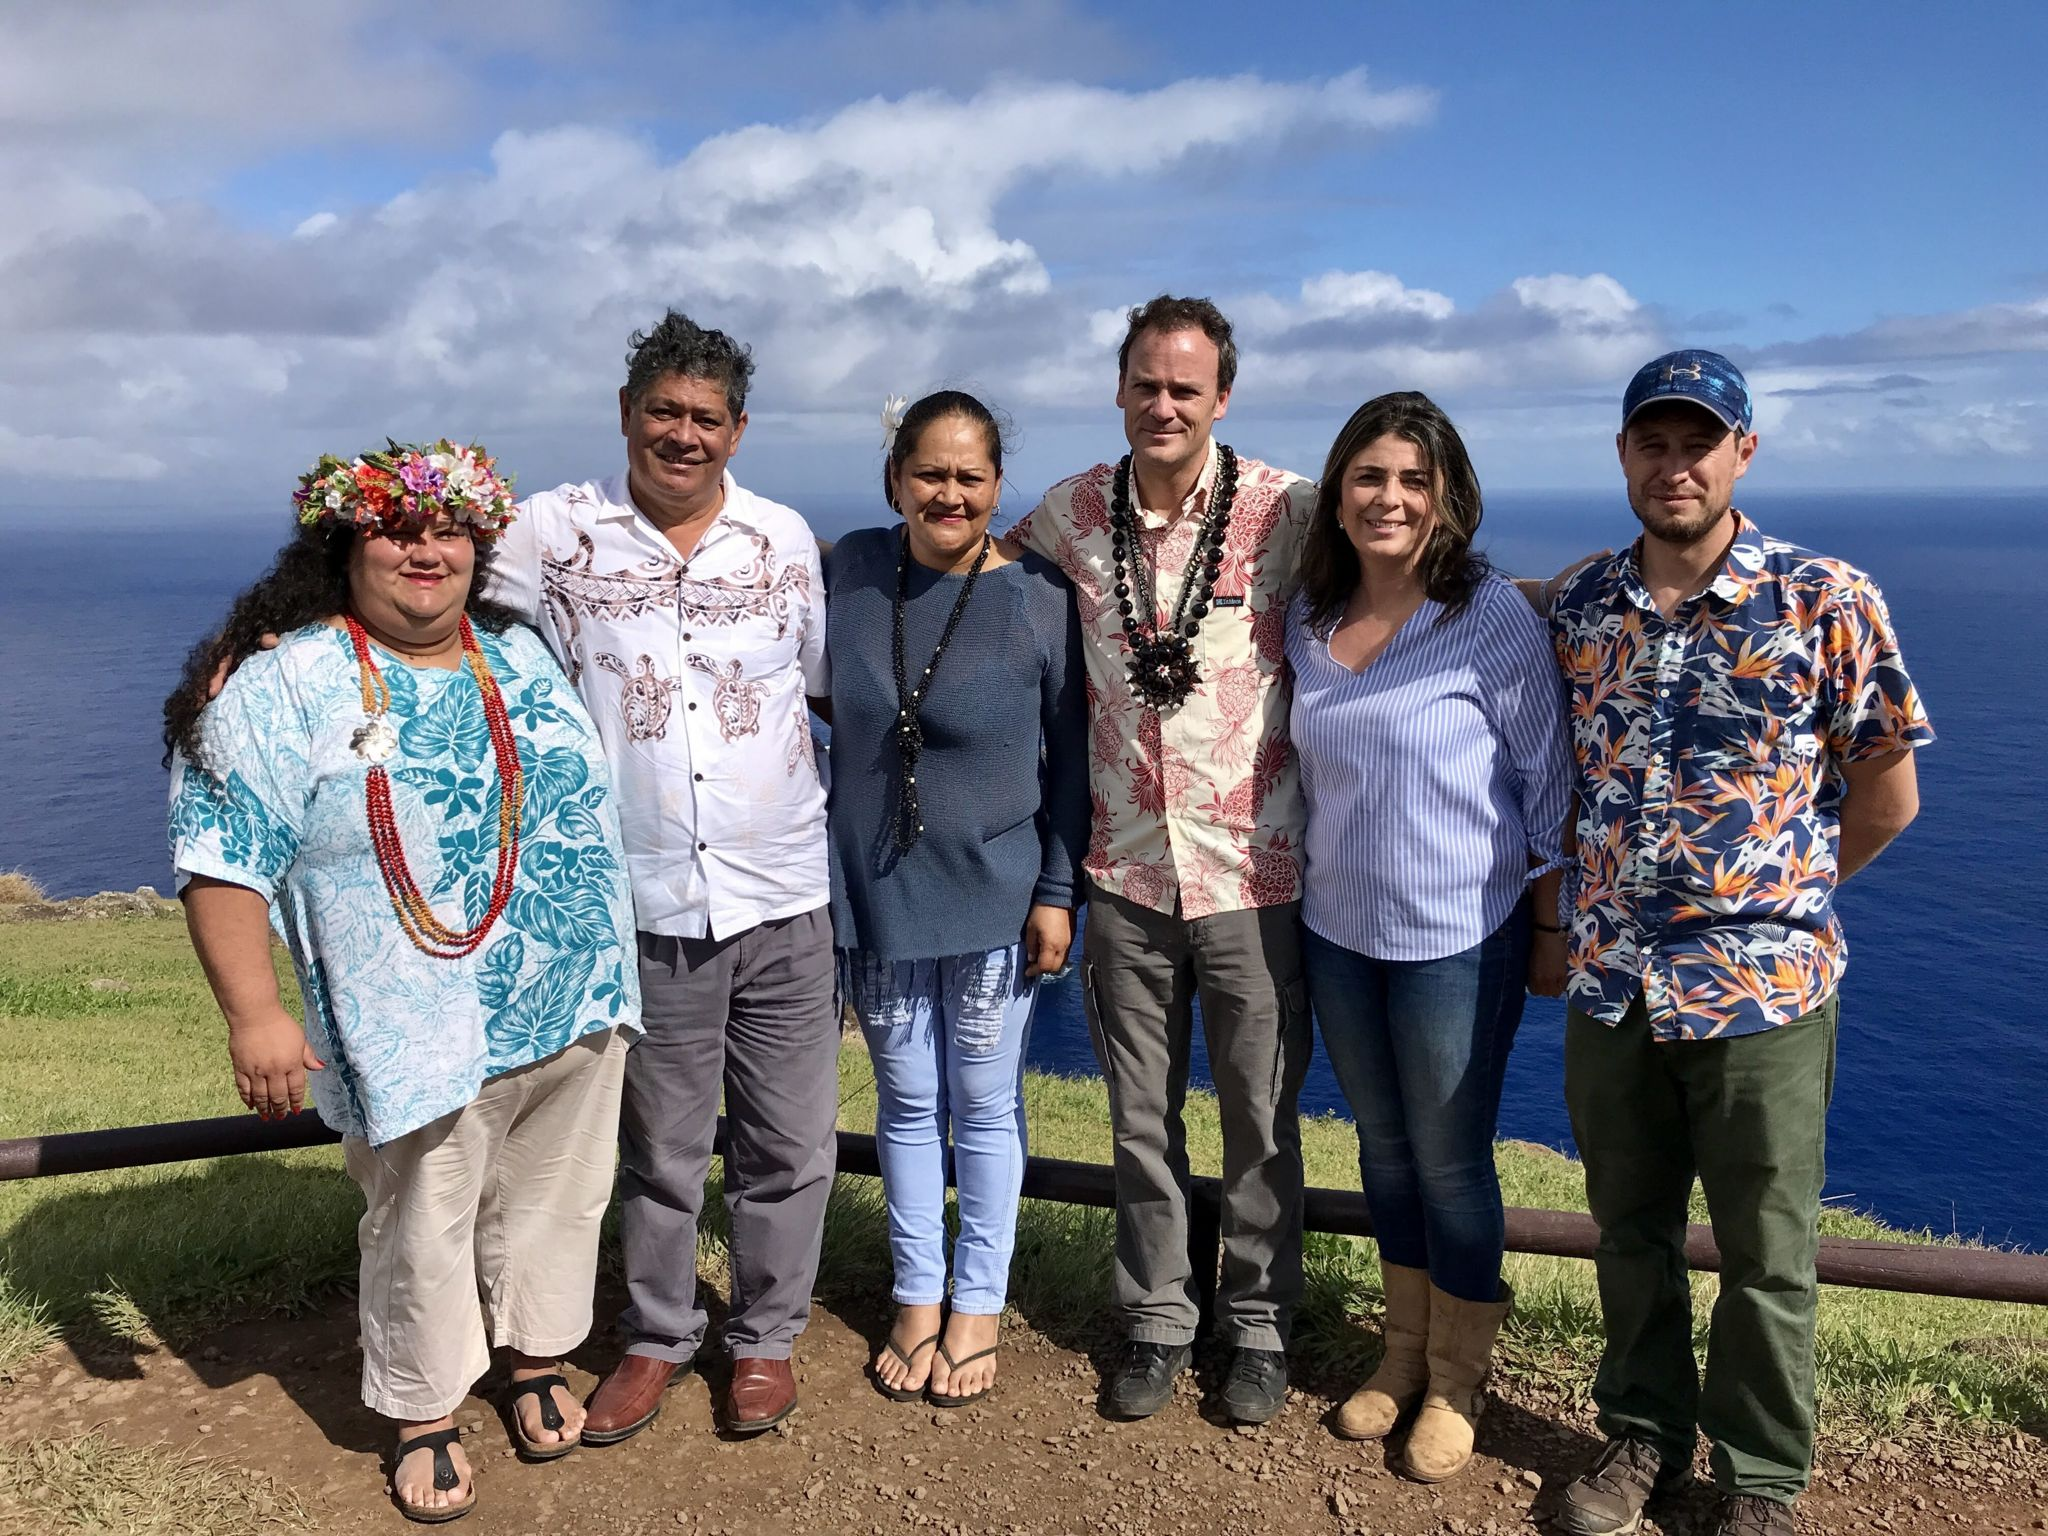 Anakena Manutomatoma (first from left) and Felipe Ward (third from right) pose for a photo on Rapa Nui